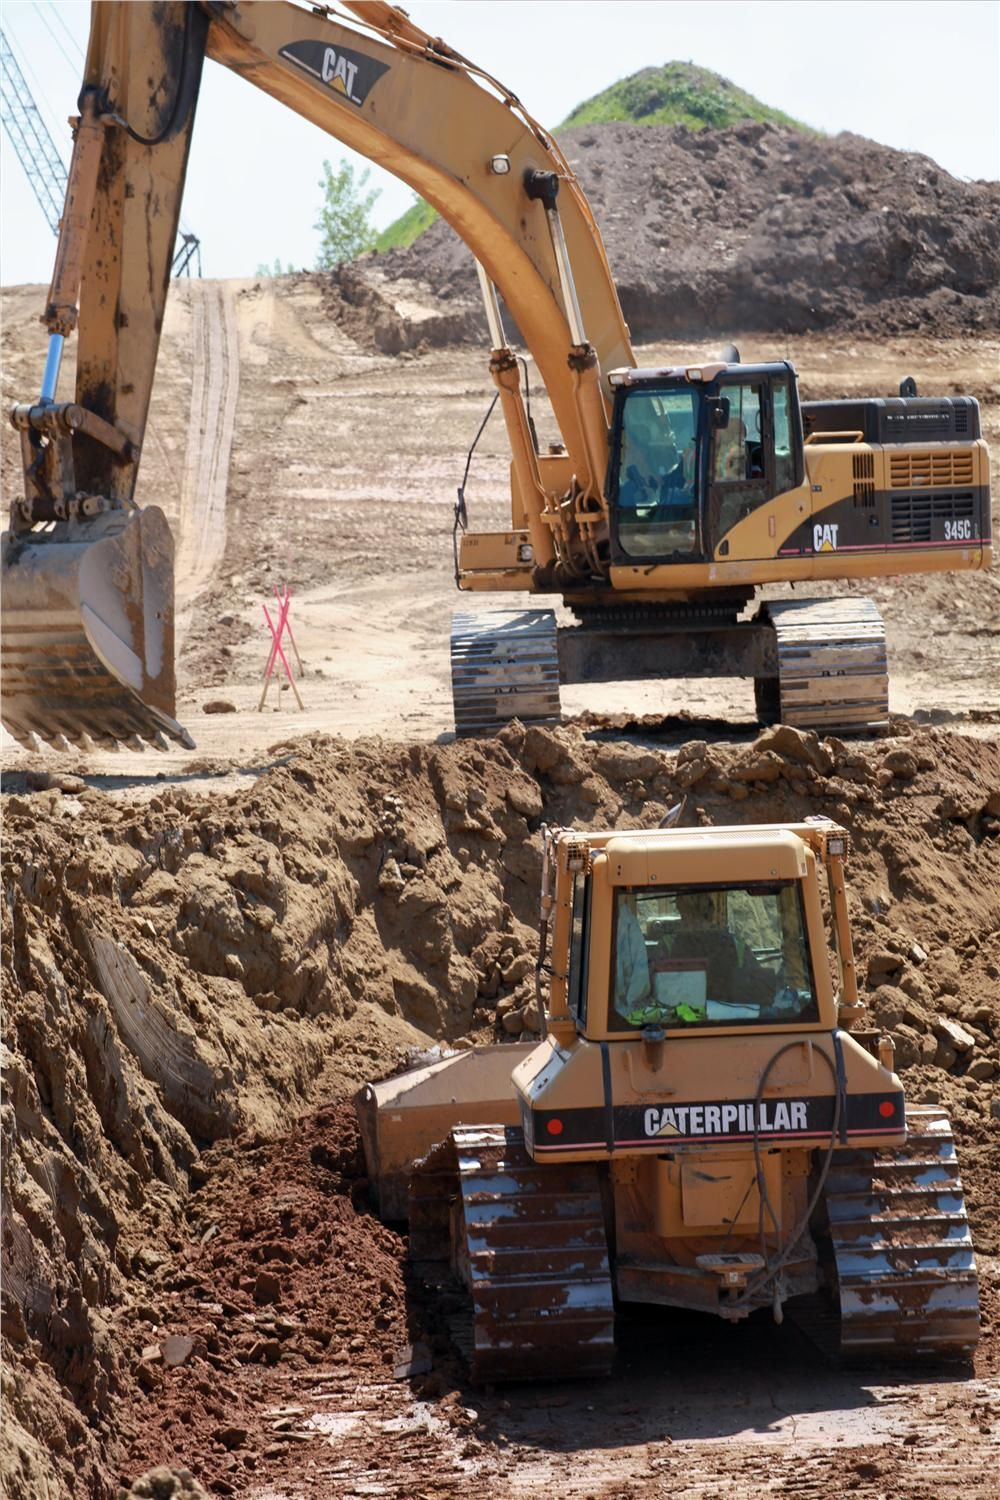 A Cat excavator and dozer work in tandem to remove fill where a portion of the new road bed was lowered up to 12 ft. (3.7 m).